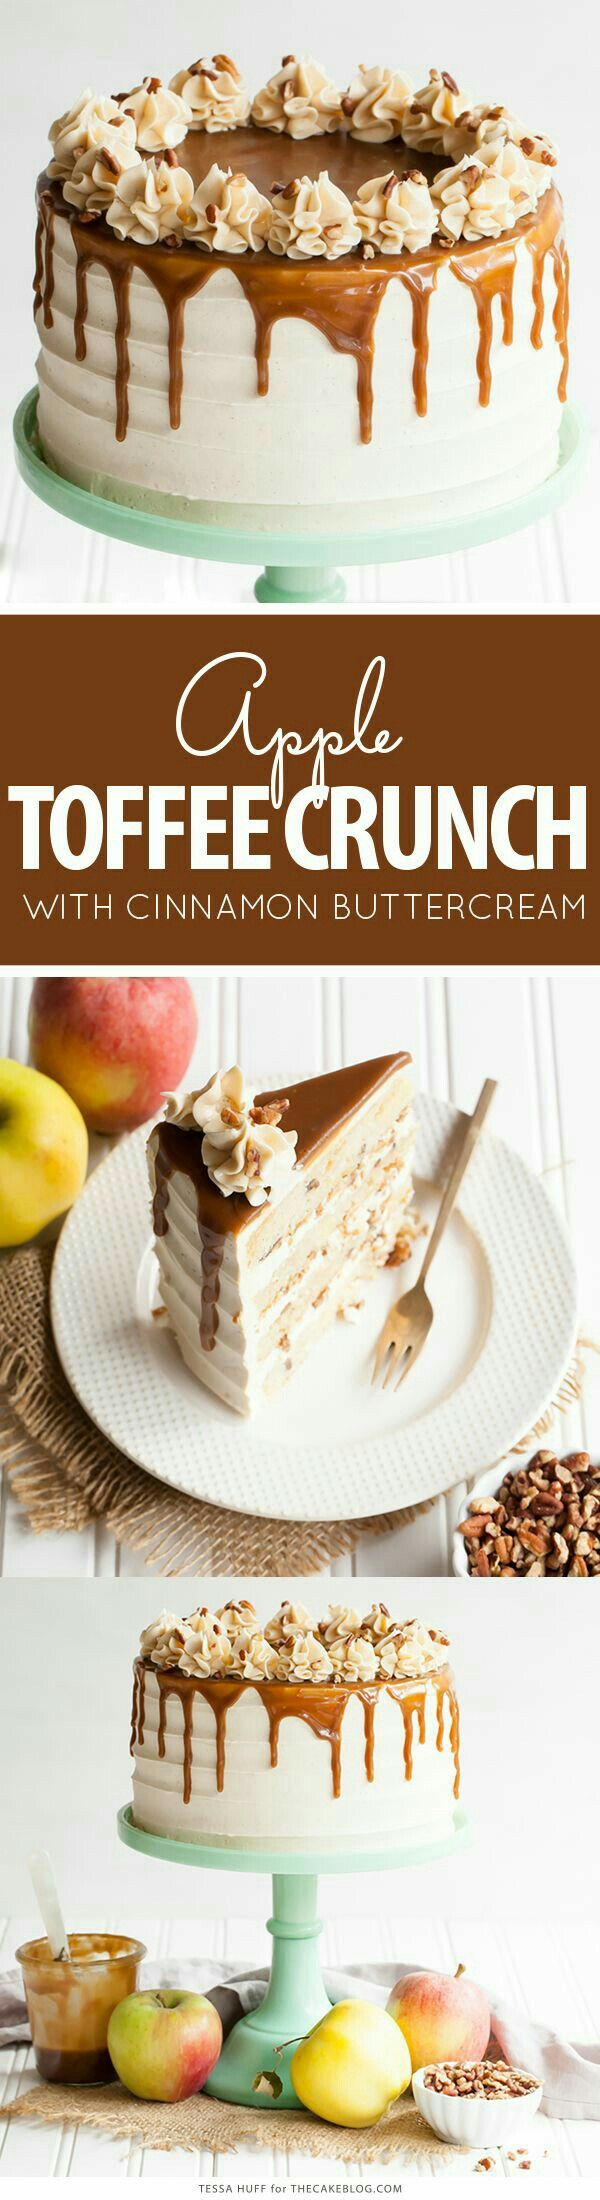 Toffee Apple crunch cake